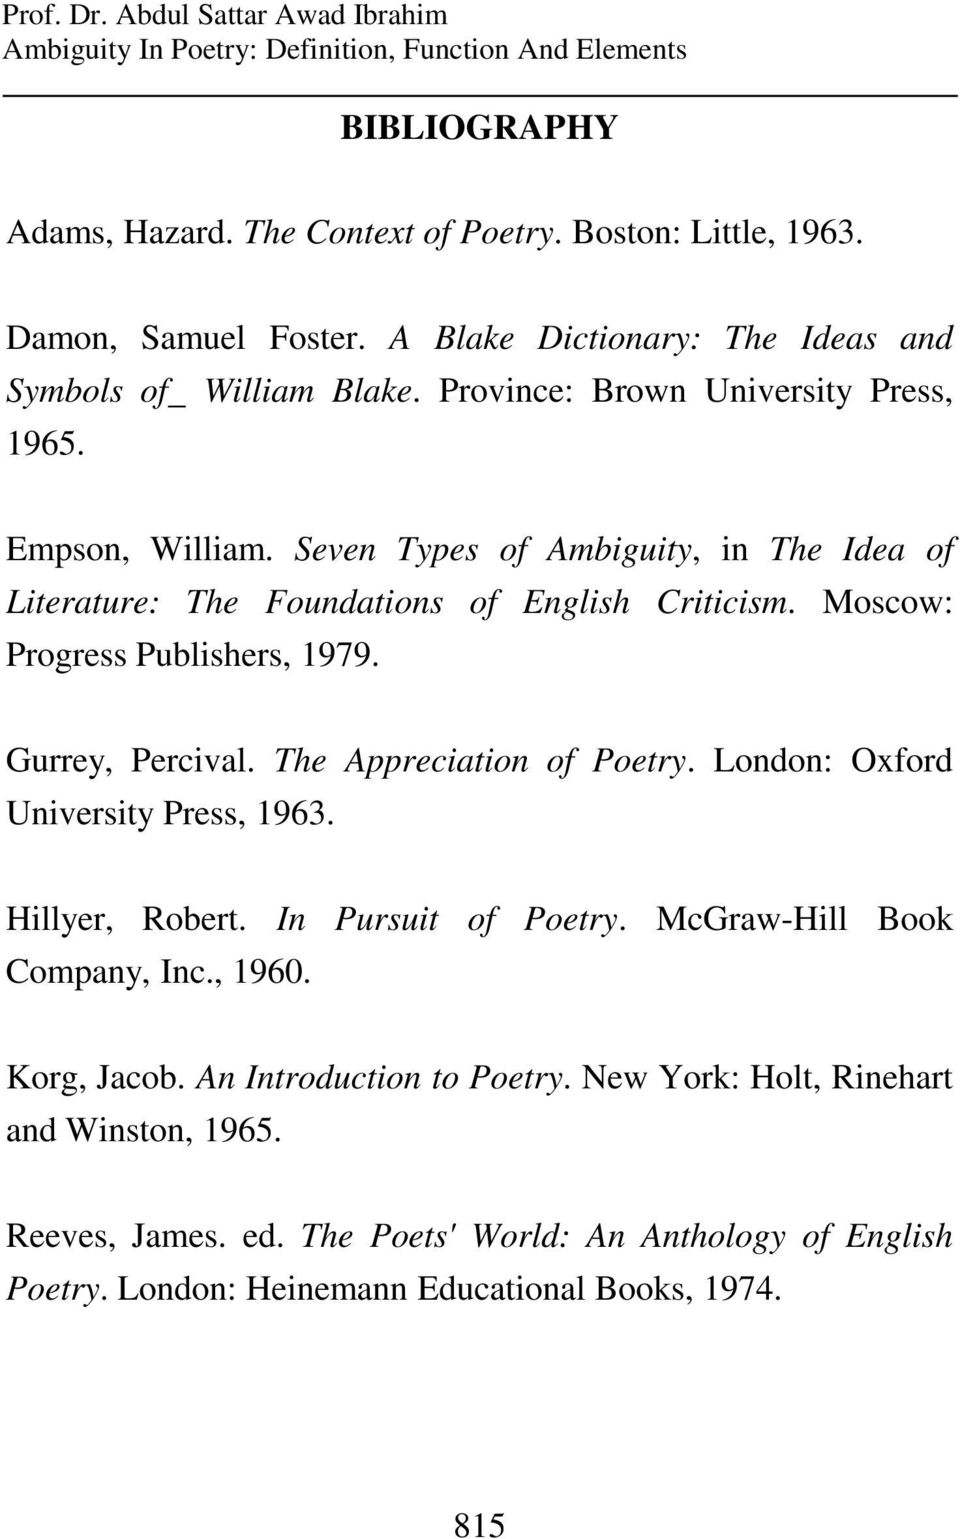 Ambiguity In Poetry Definition Function And Elements Pdf